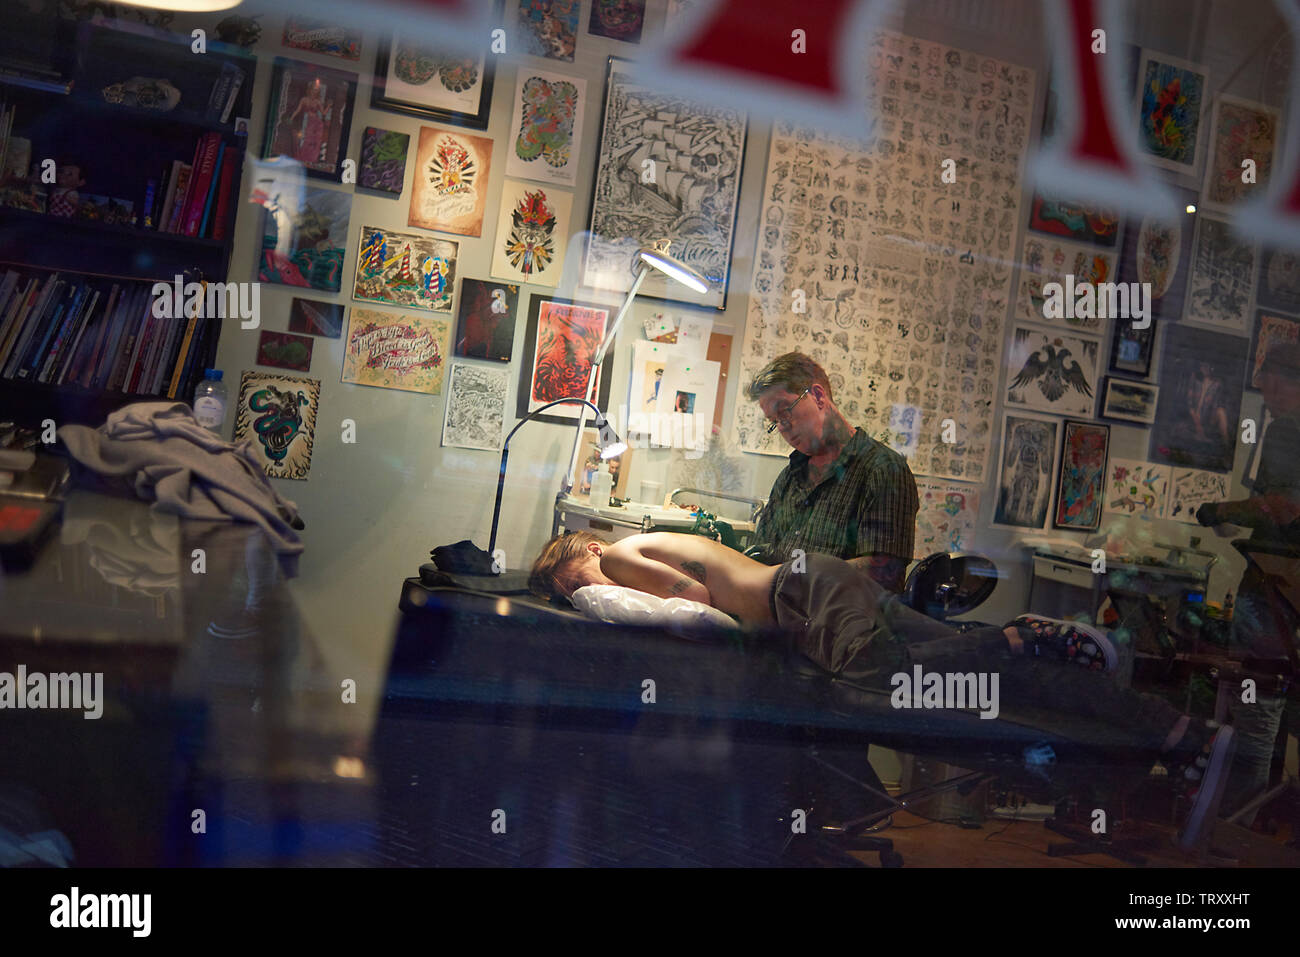 Tattoo artist tattooing the back of a woman in his shop in Amsterdam - Stock Image